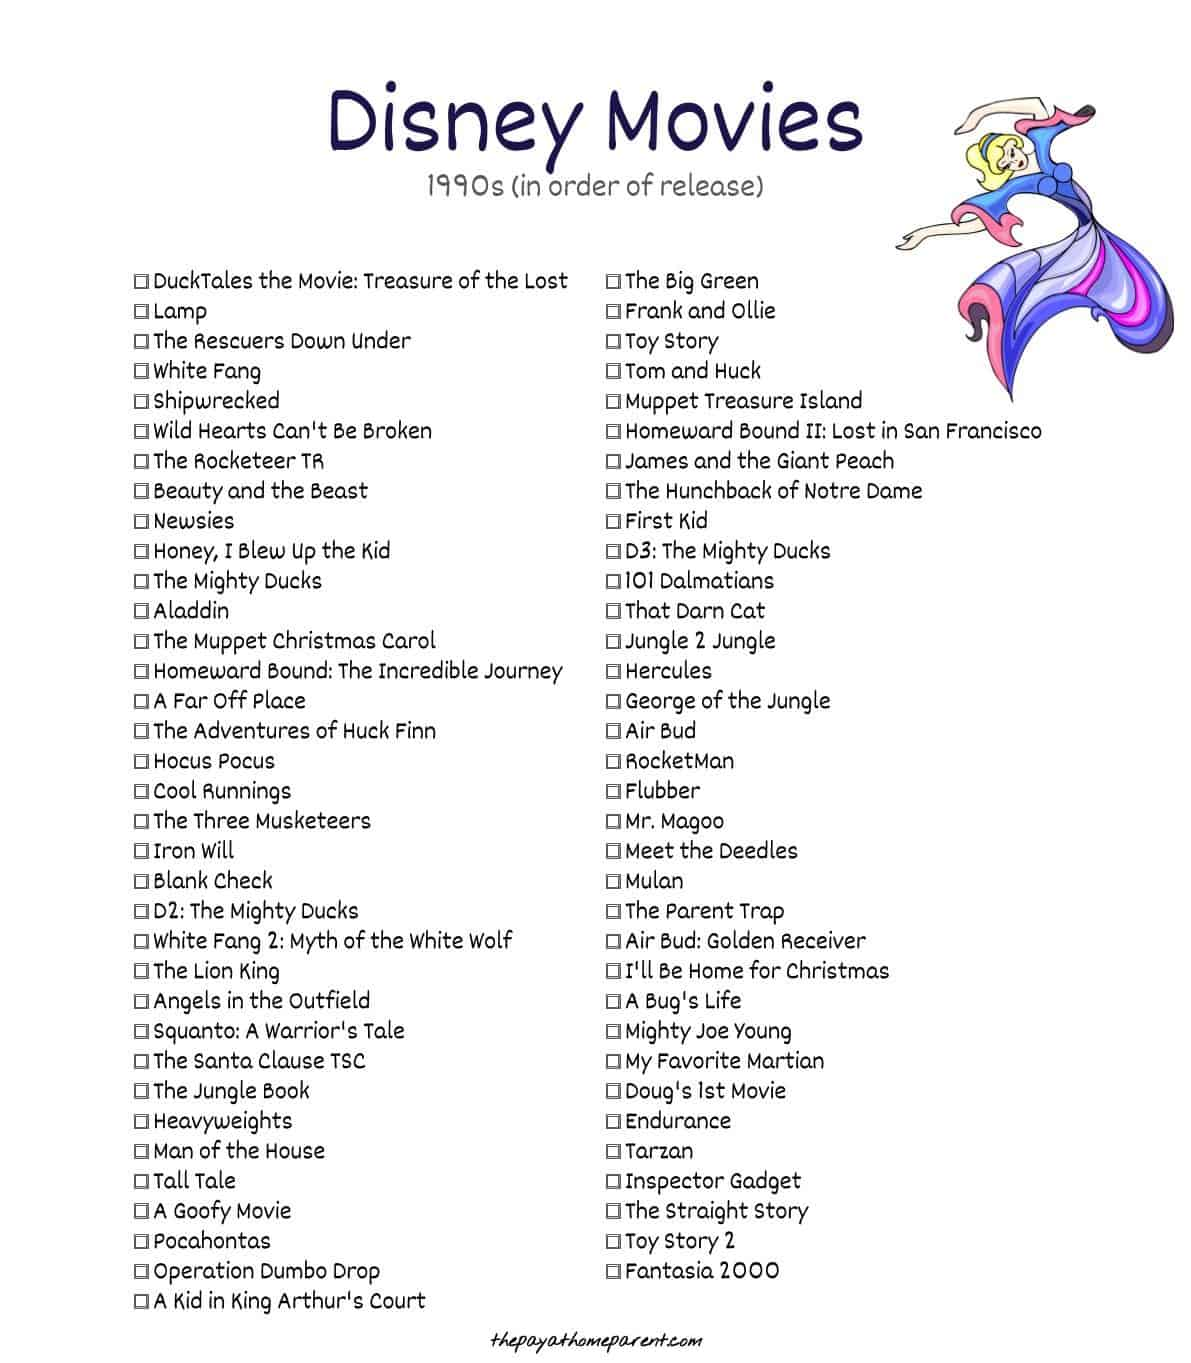 Walt Disney Movies - Beauty and the Beast, Aladdin, The Lion King, Pocahontas, Toy Story, 101 Dalmatians, Mulan, A Bug's Life, Tarzan, Toy Story 2 and so many more Walt Disney Movies are included on this extensive list of Disney movies from the 1990s